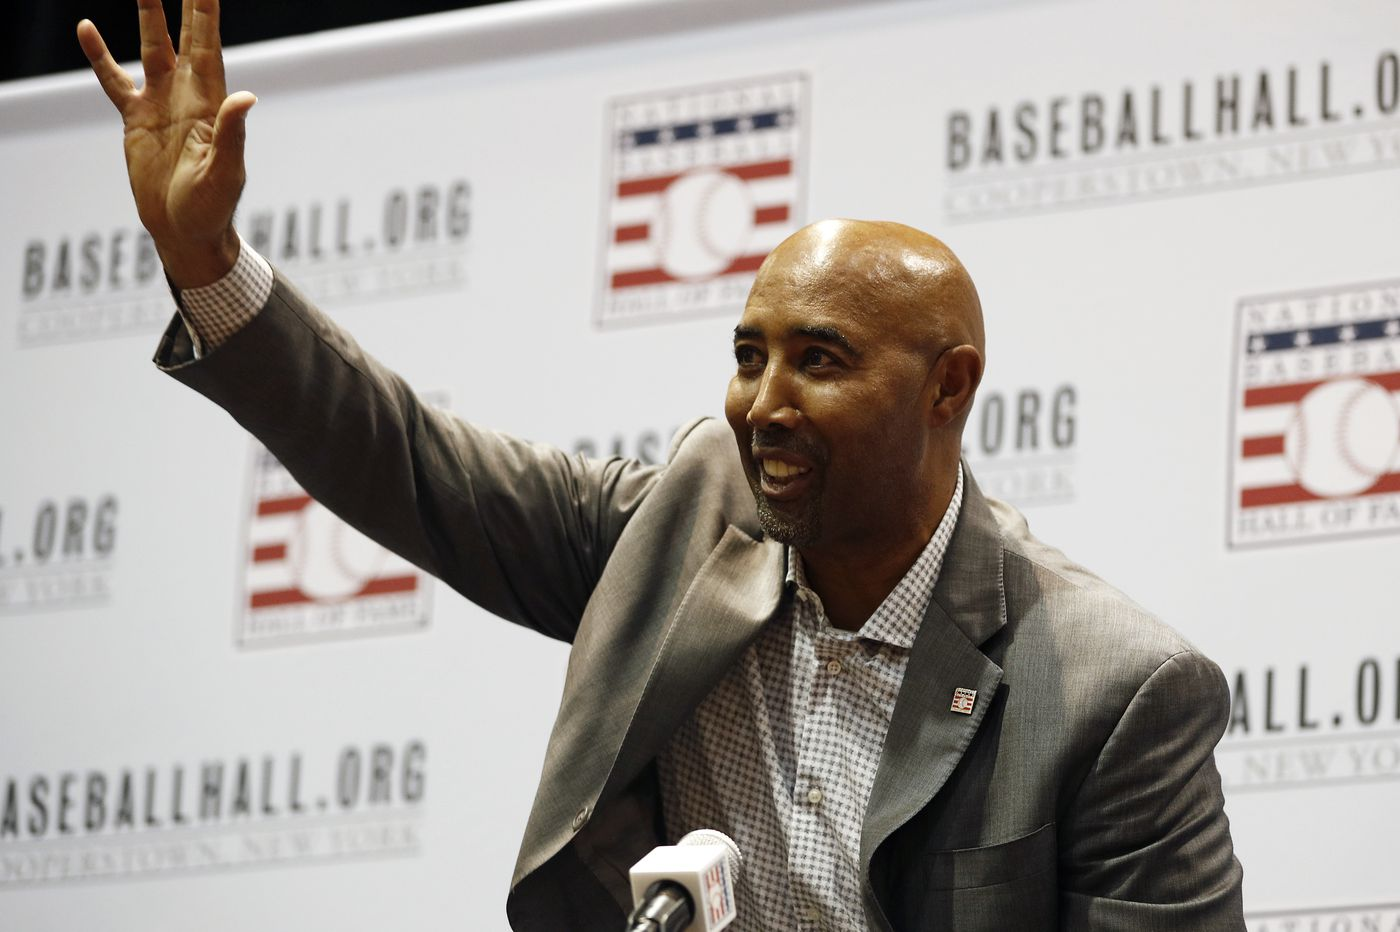 The Hall of Fame is lesser for Harold Baines' inclusion and Dick Allen's absence | Mike Sielski